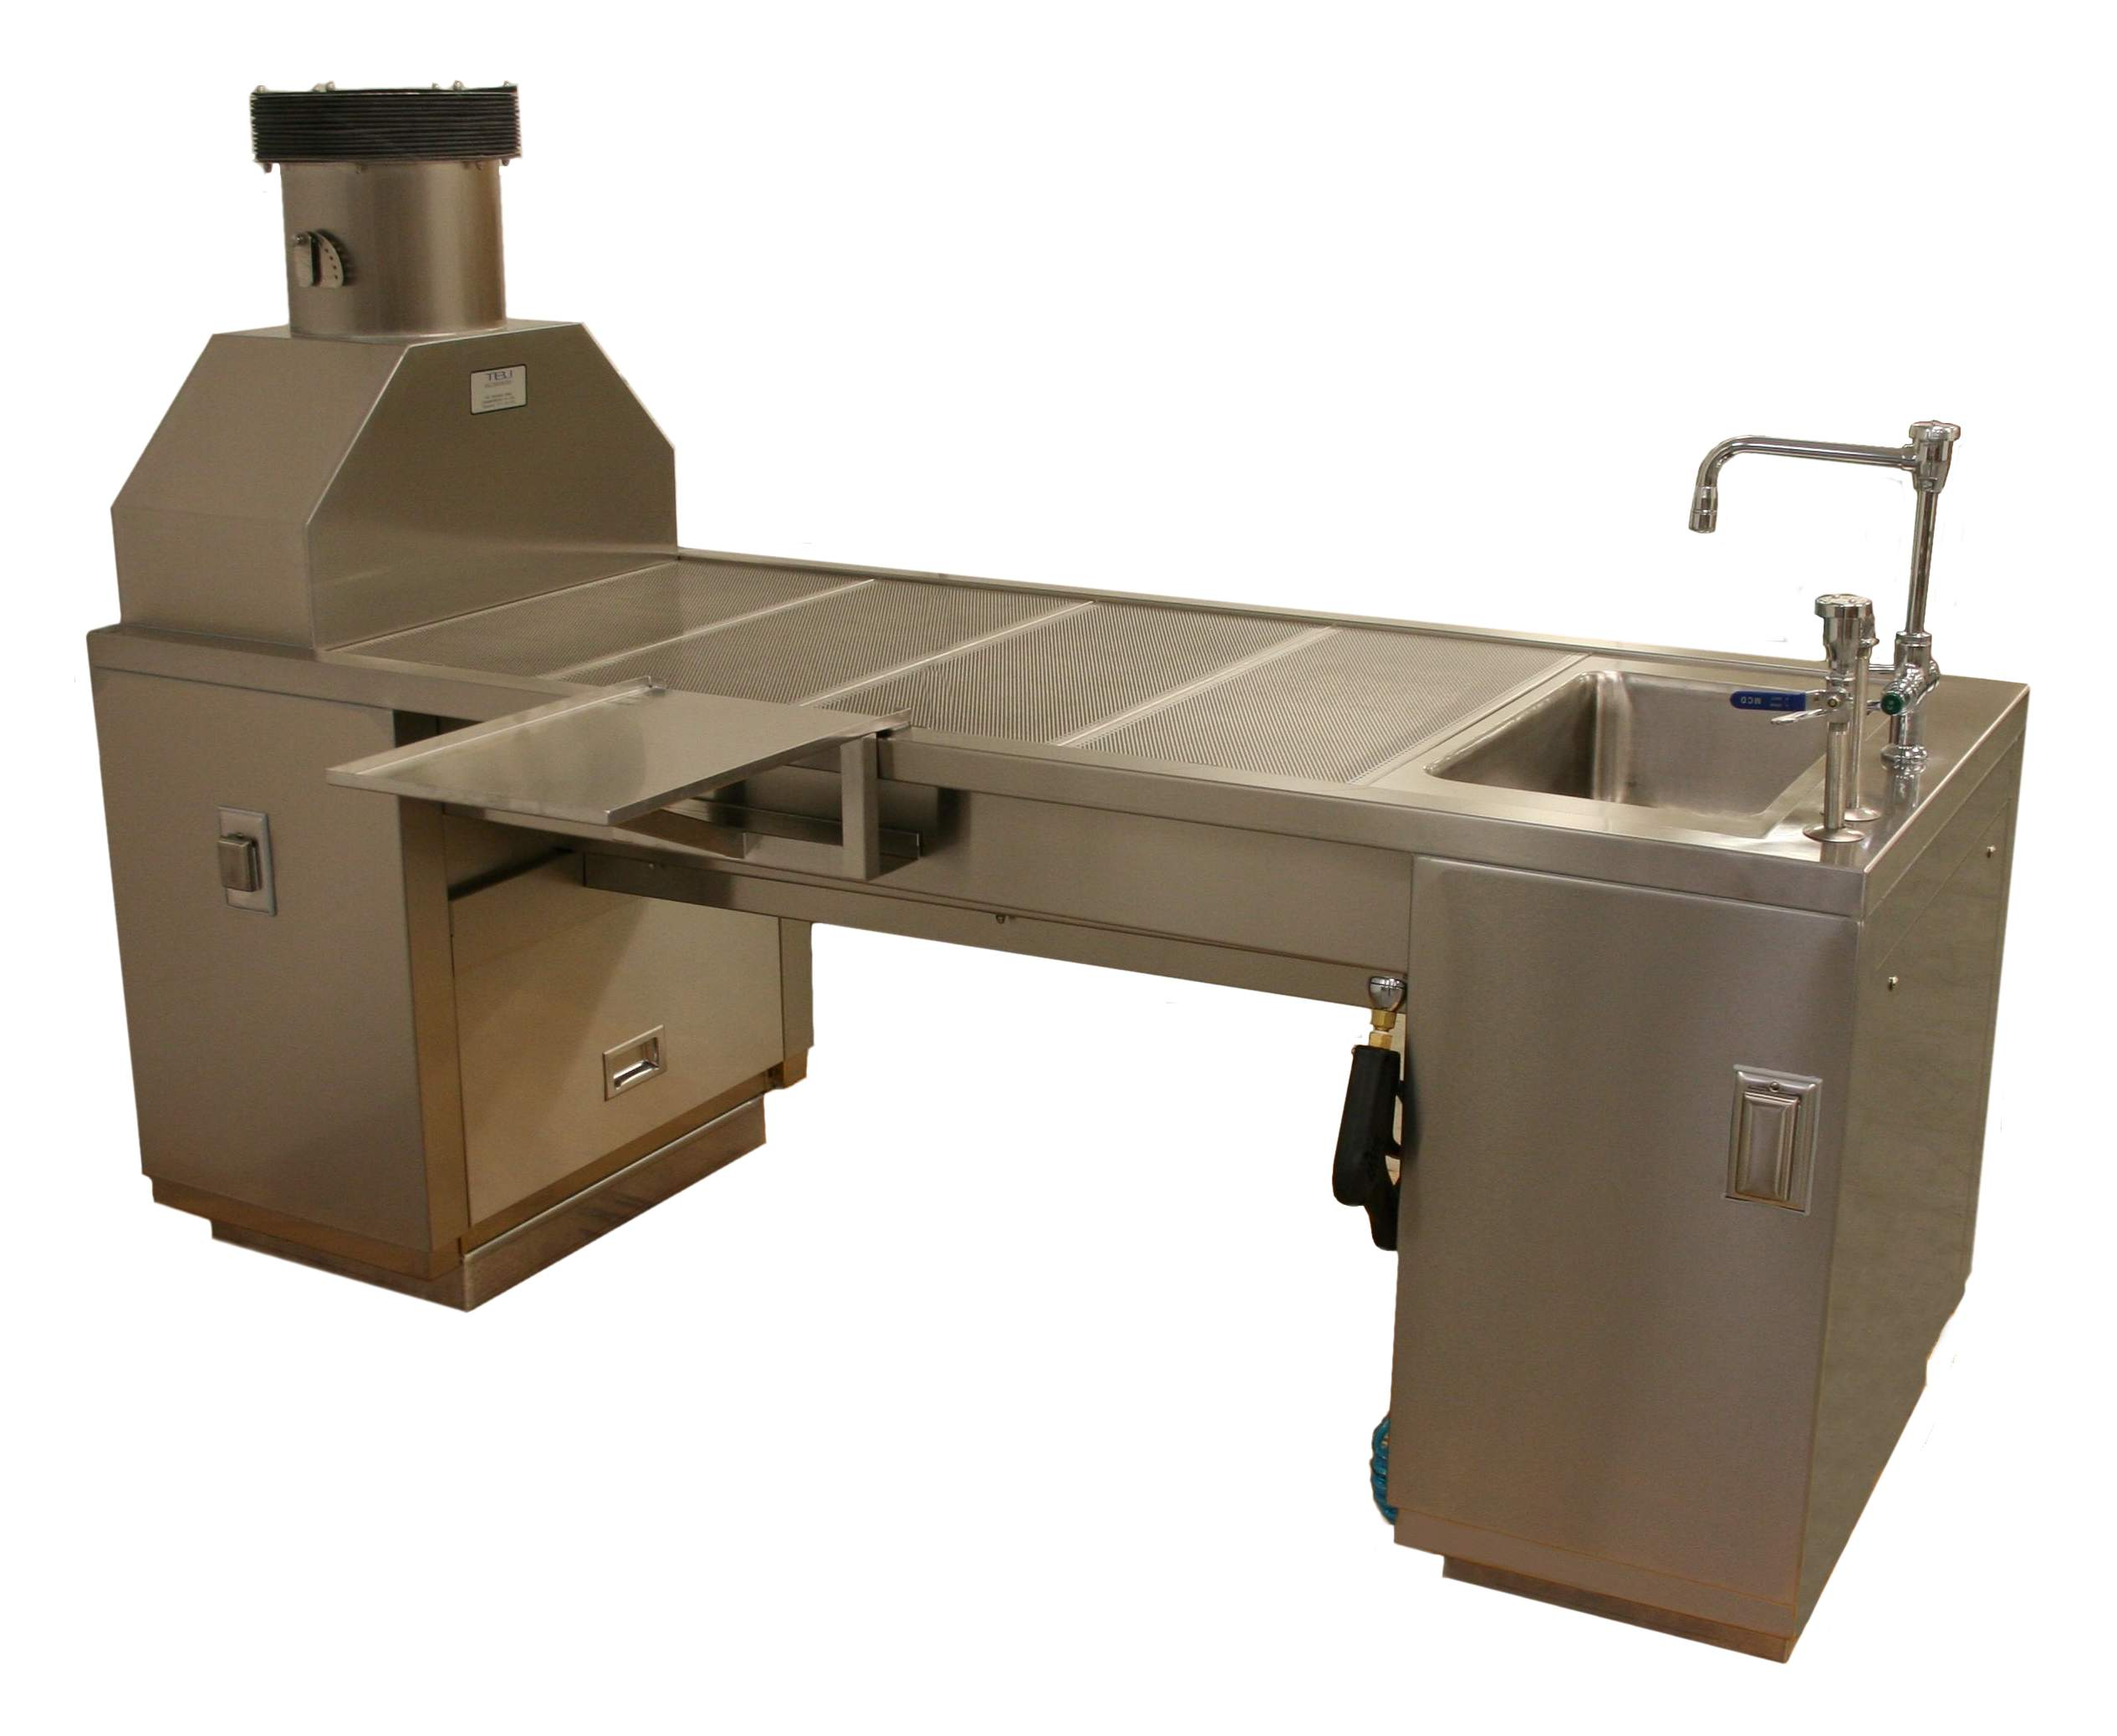 30-72-S AH 2 Downdraft Table